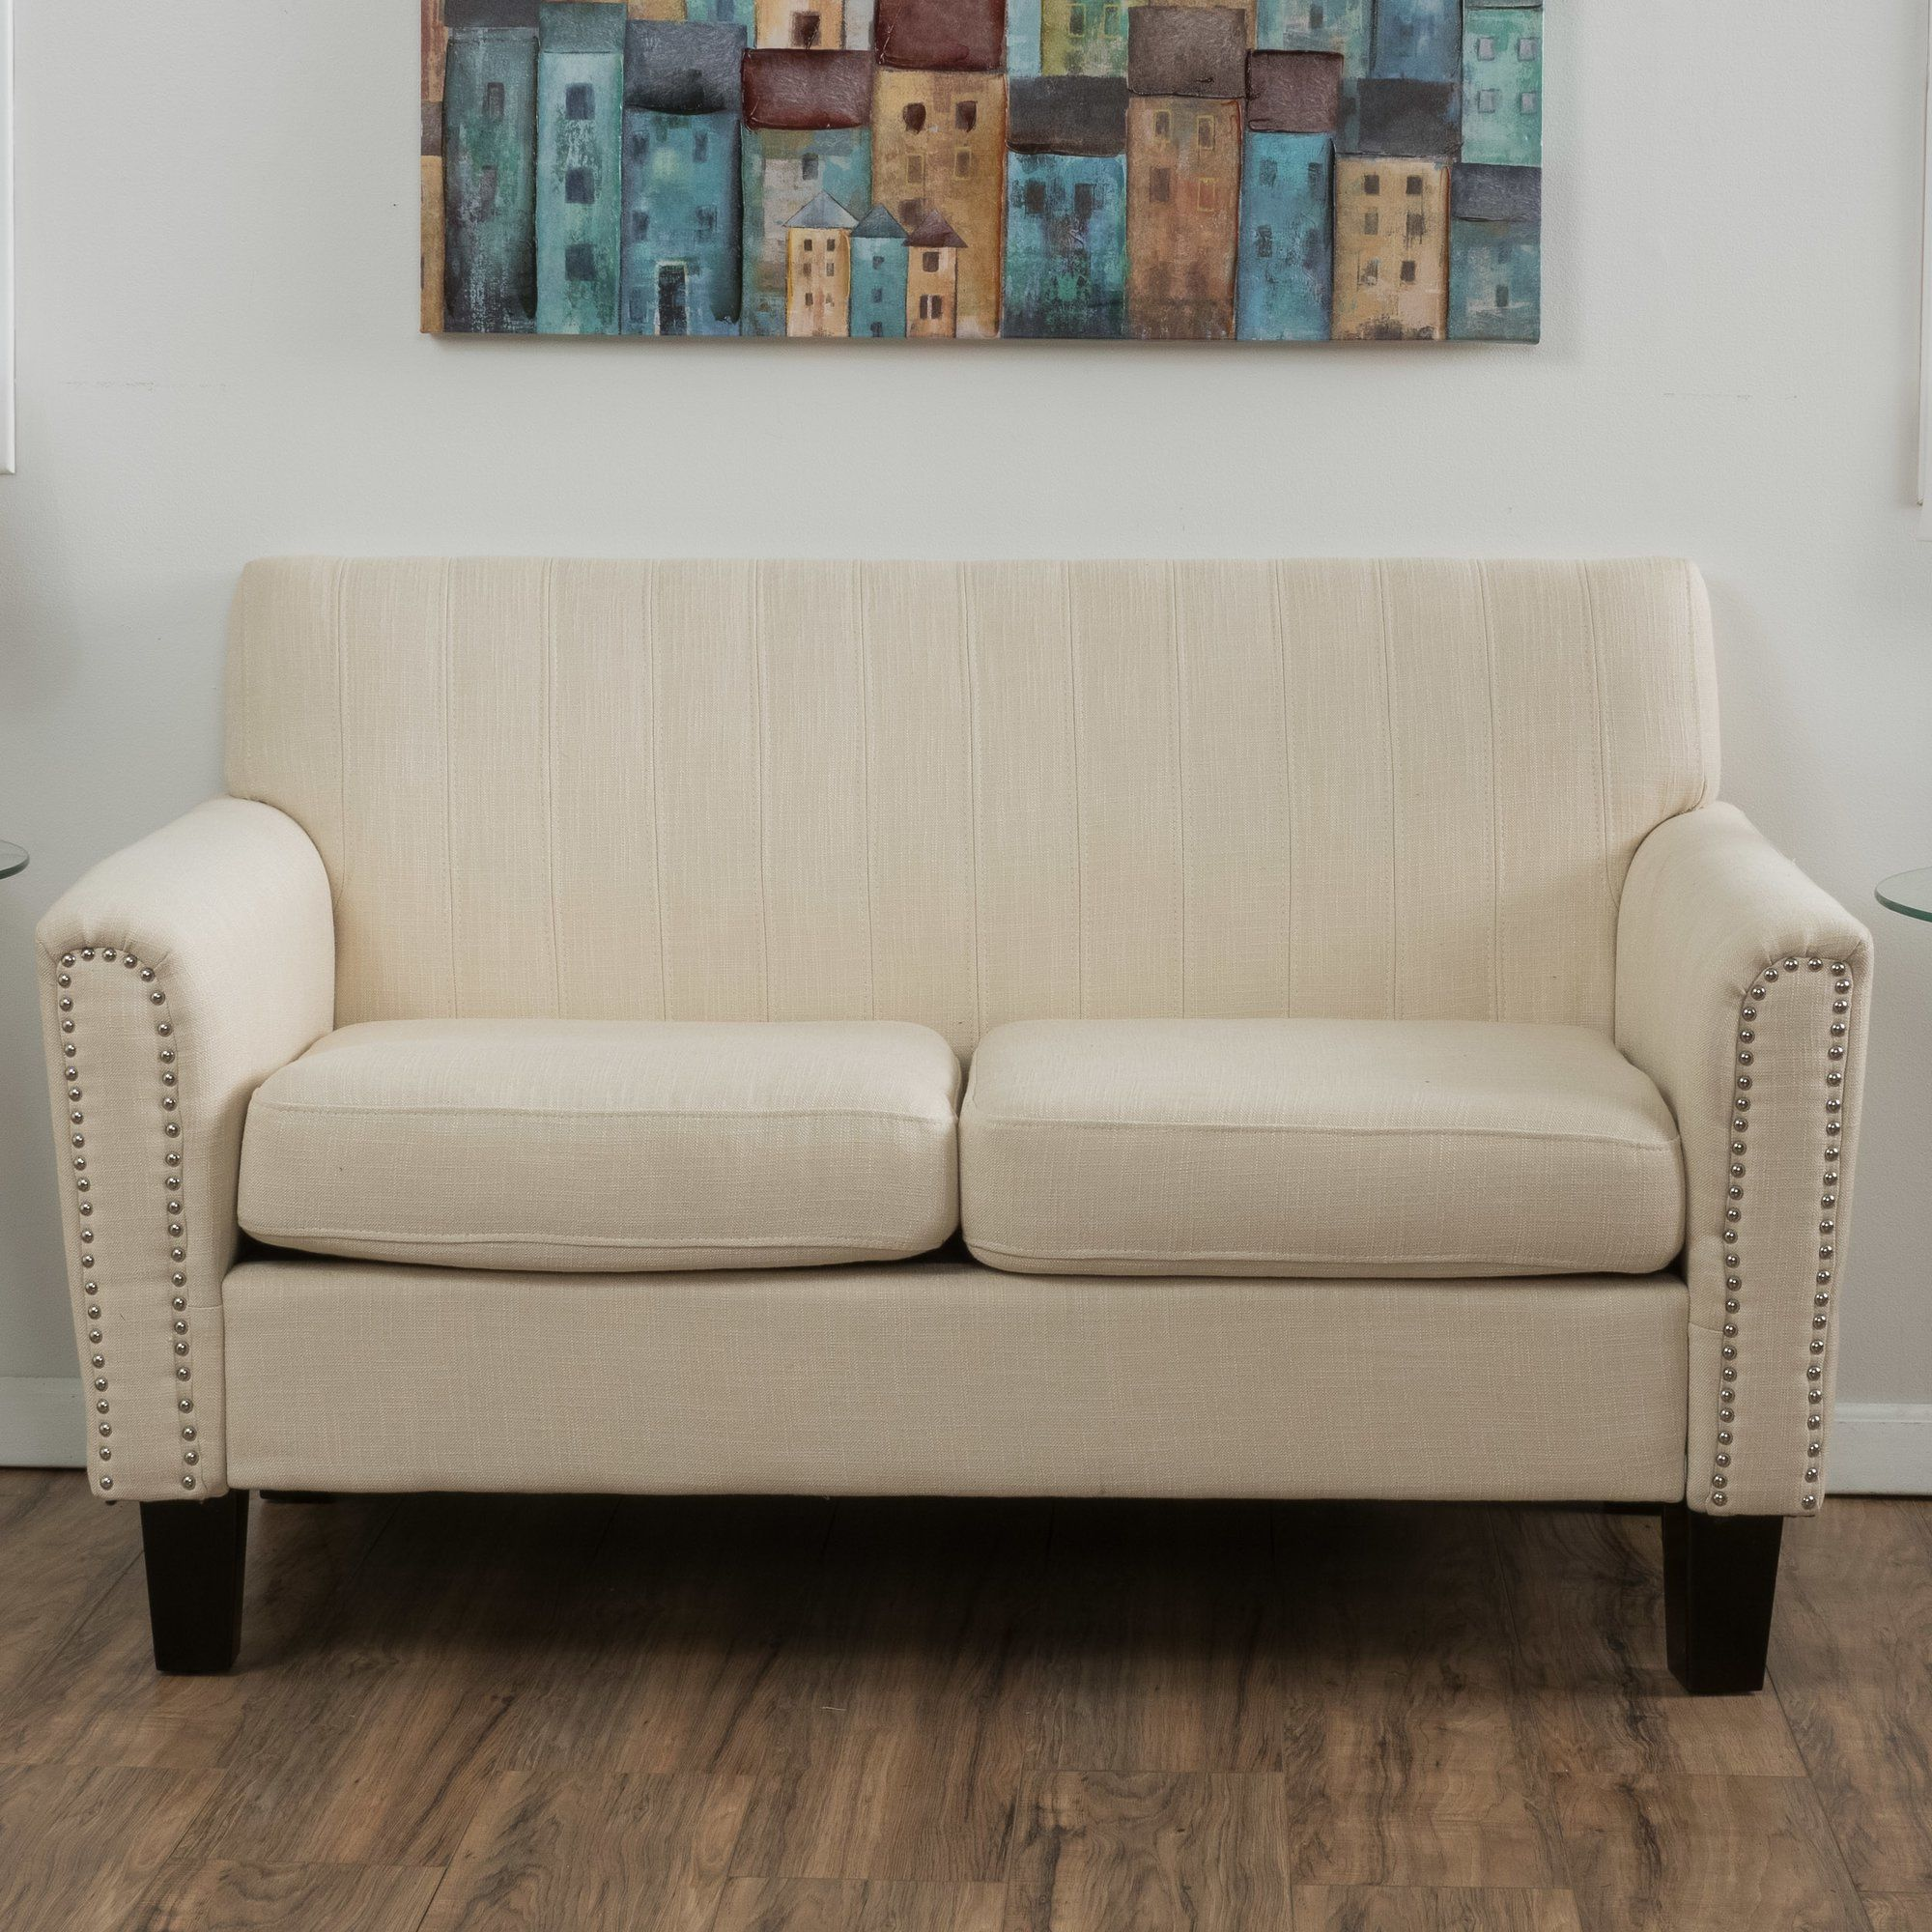 Main Image Zoomed Love seat, Diy living room furniture